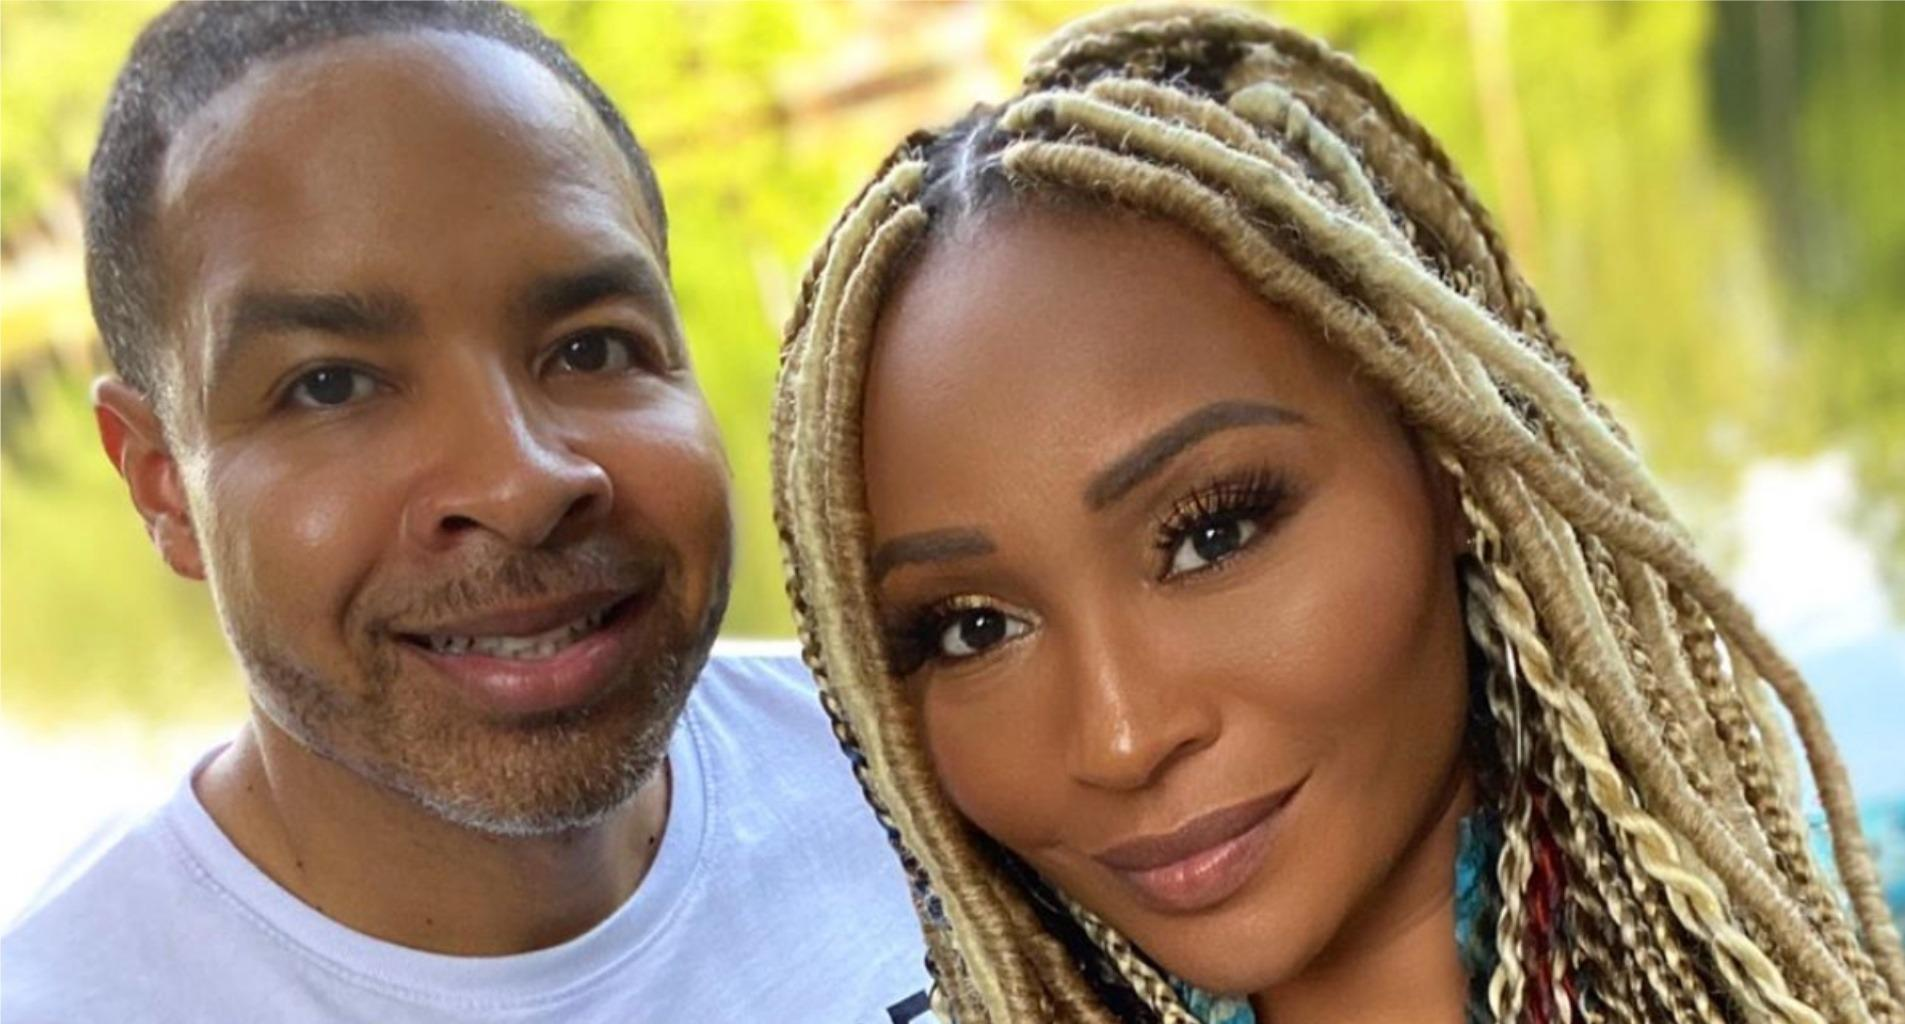 Cynthia Bailey Shares One Of Her Favorite Photos - Check Out What Impressed Fans